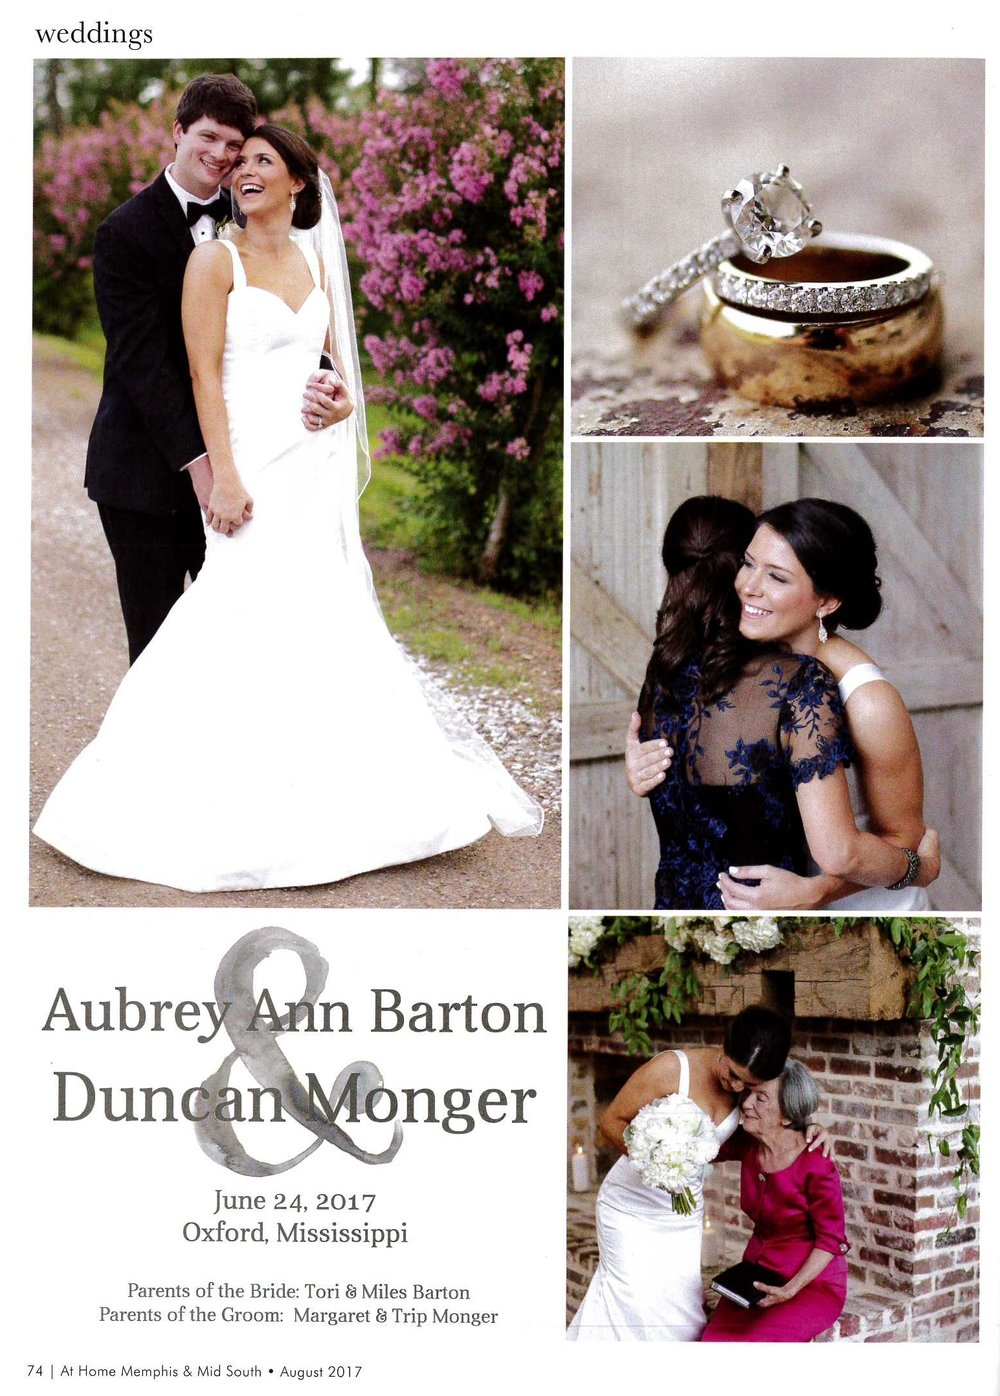 at home memphis barton+Monger wedding pg 1.jpg